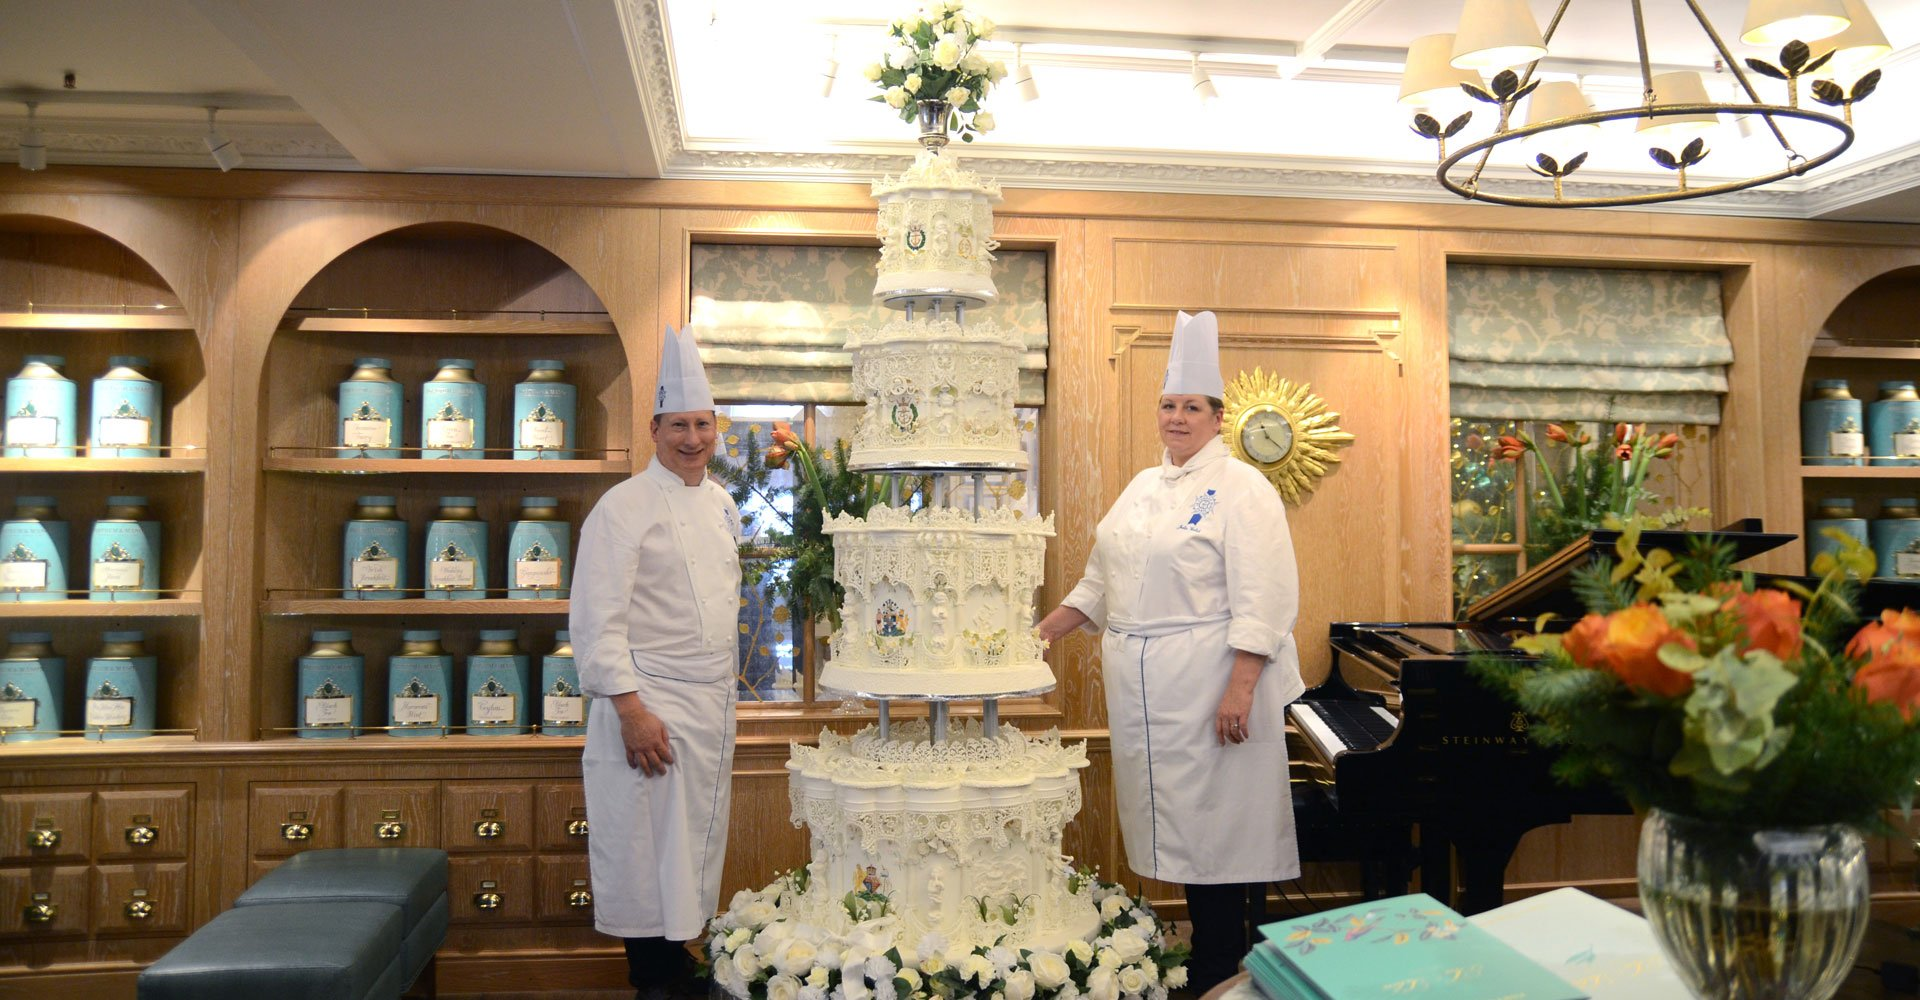 royal wedding cake on display at Fortnum and Mason